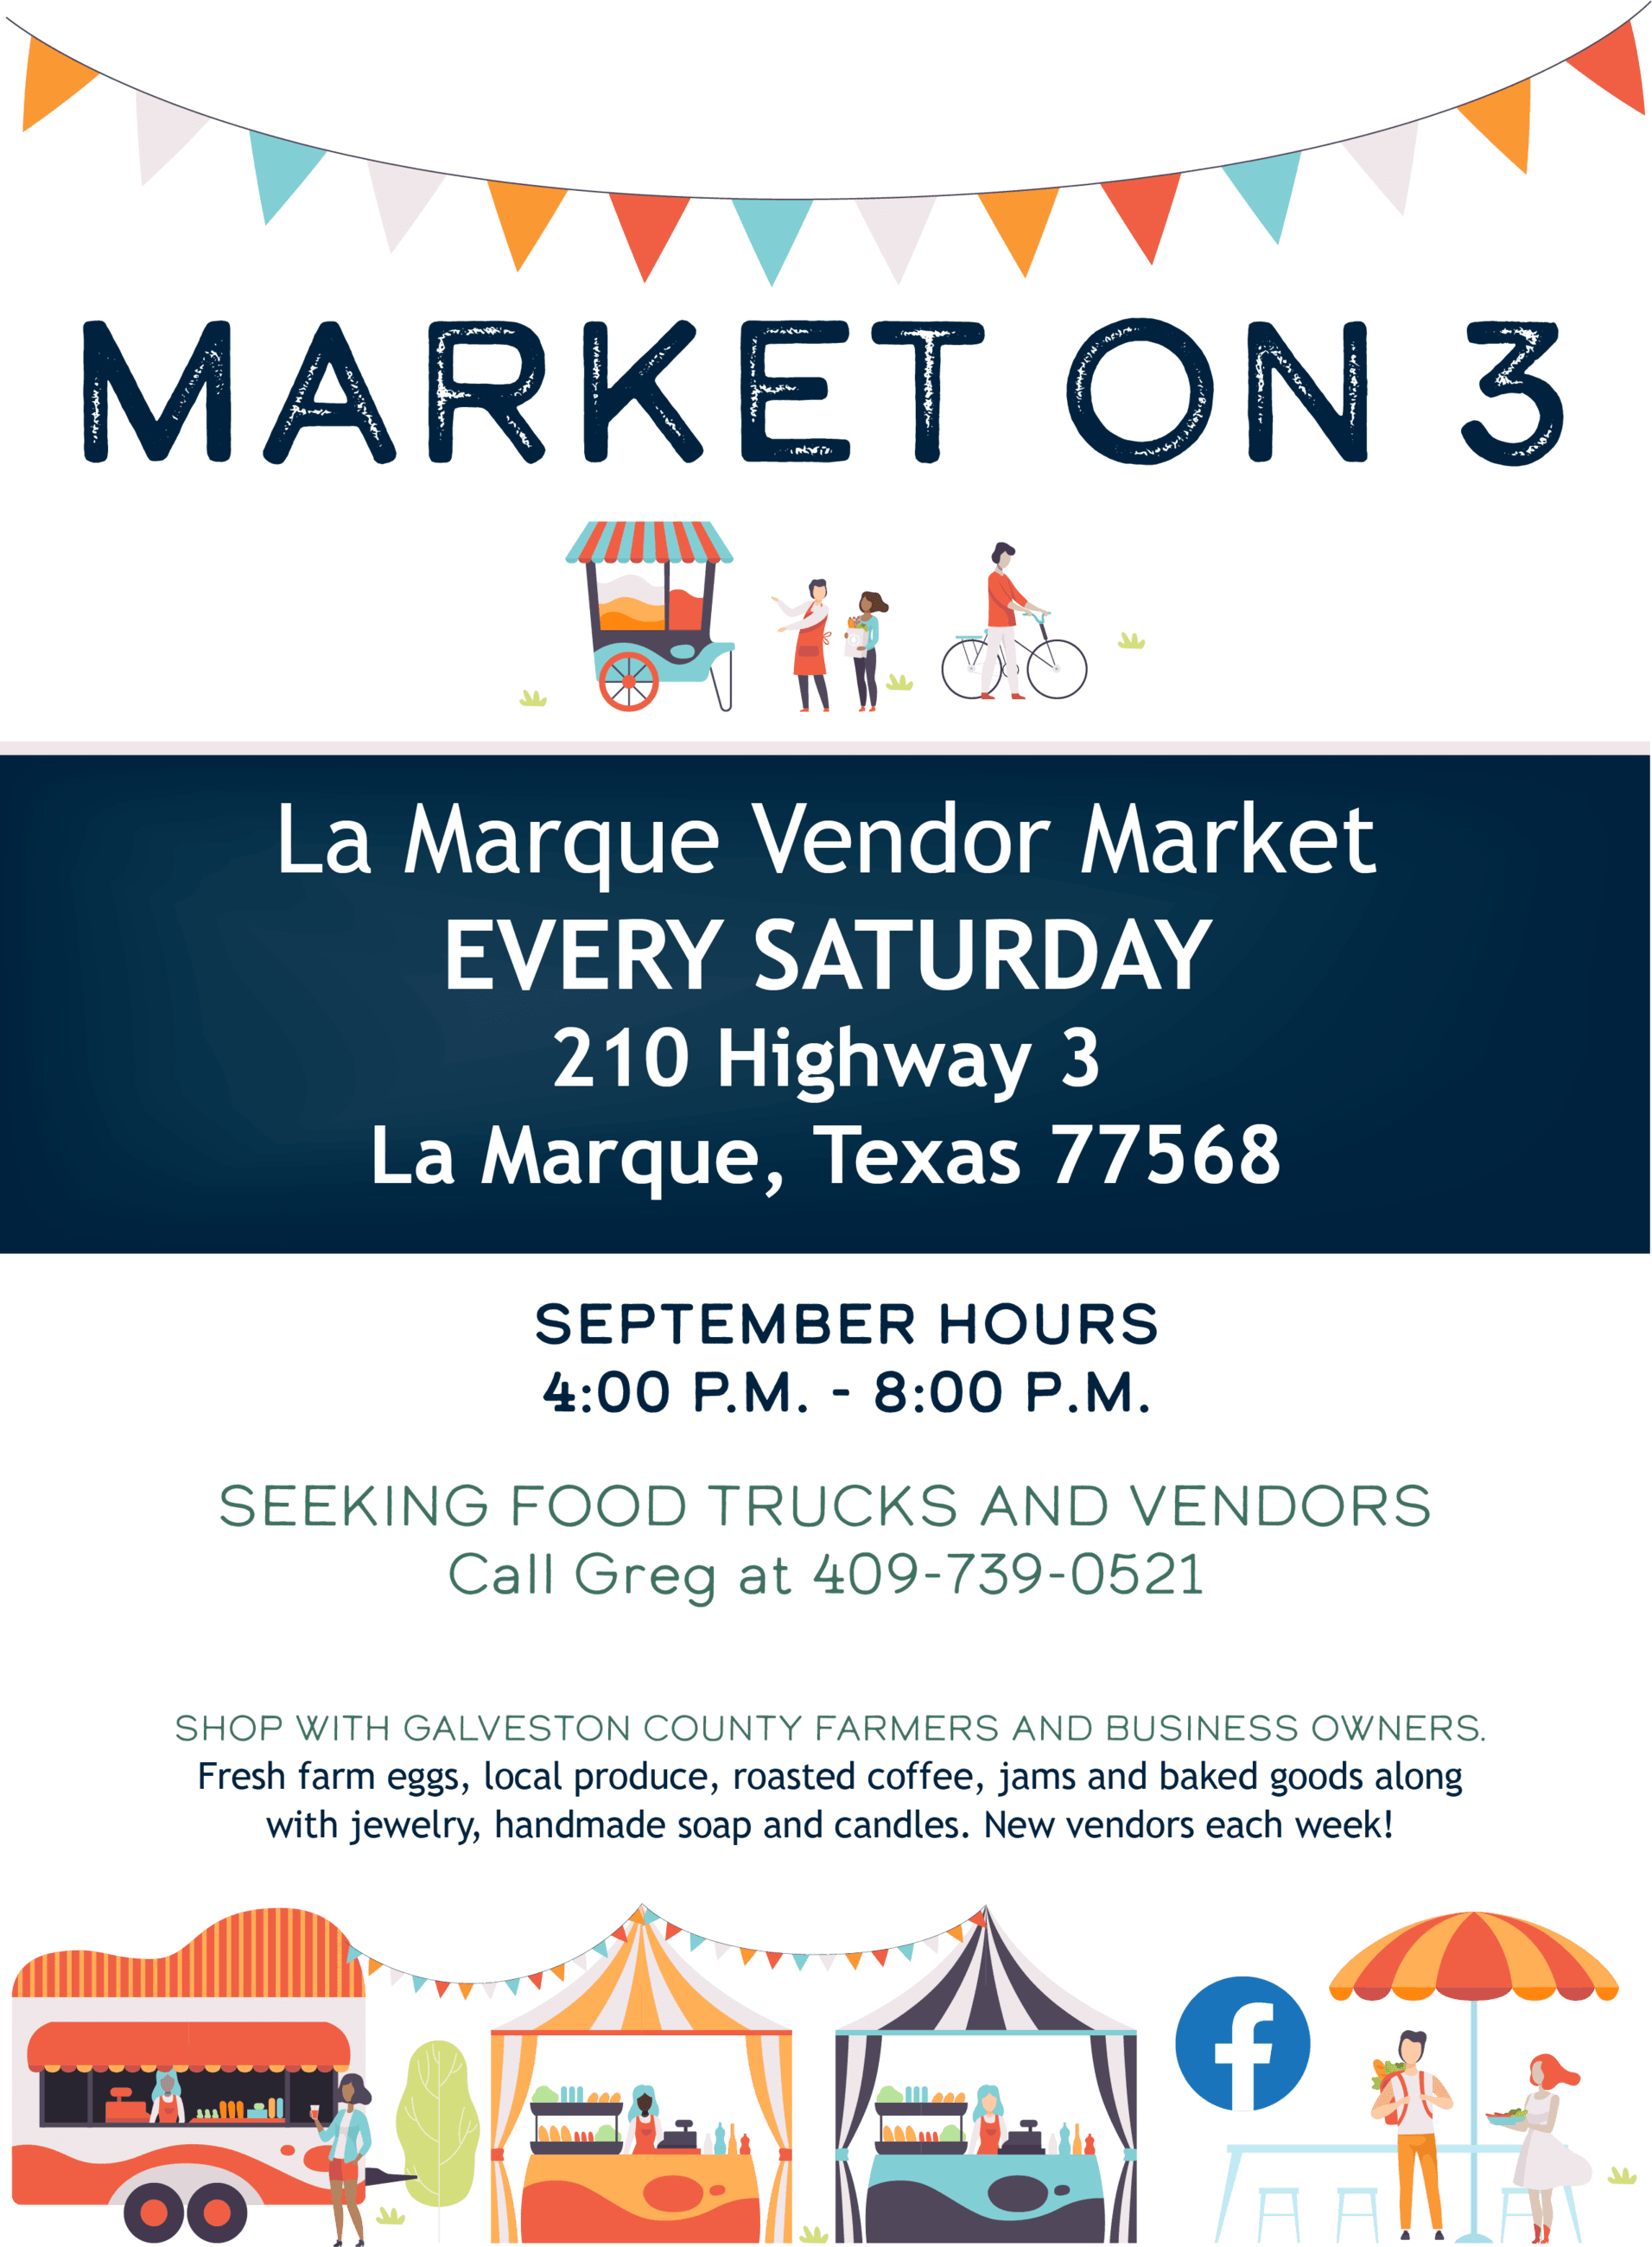 Market on 3 Flyer_Sept2019